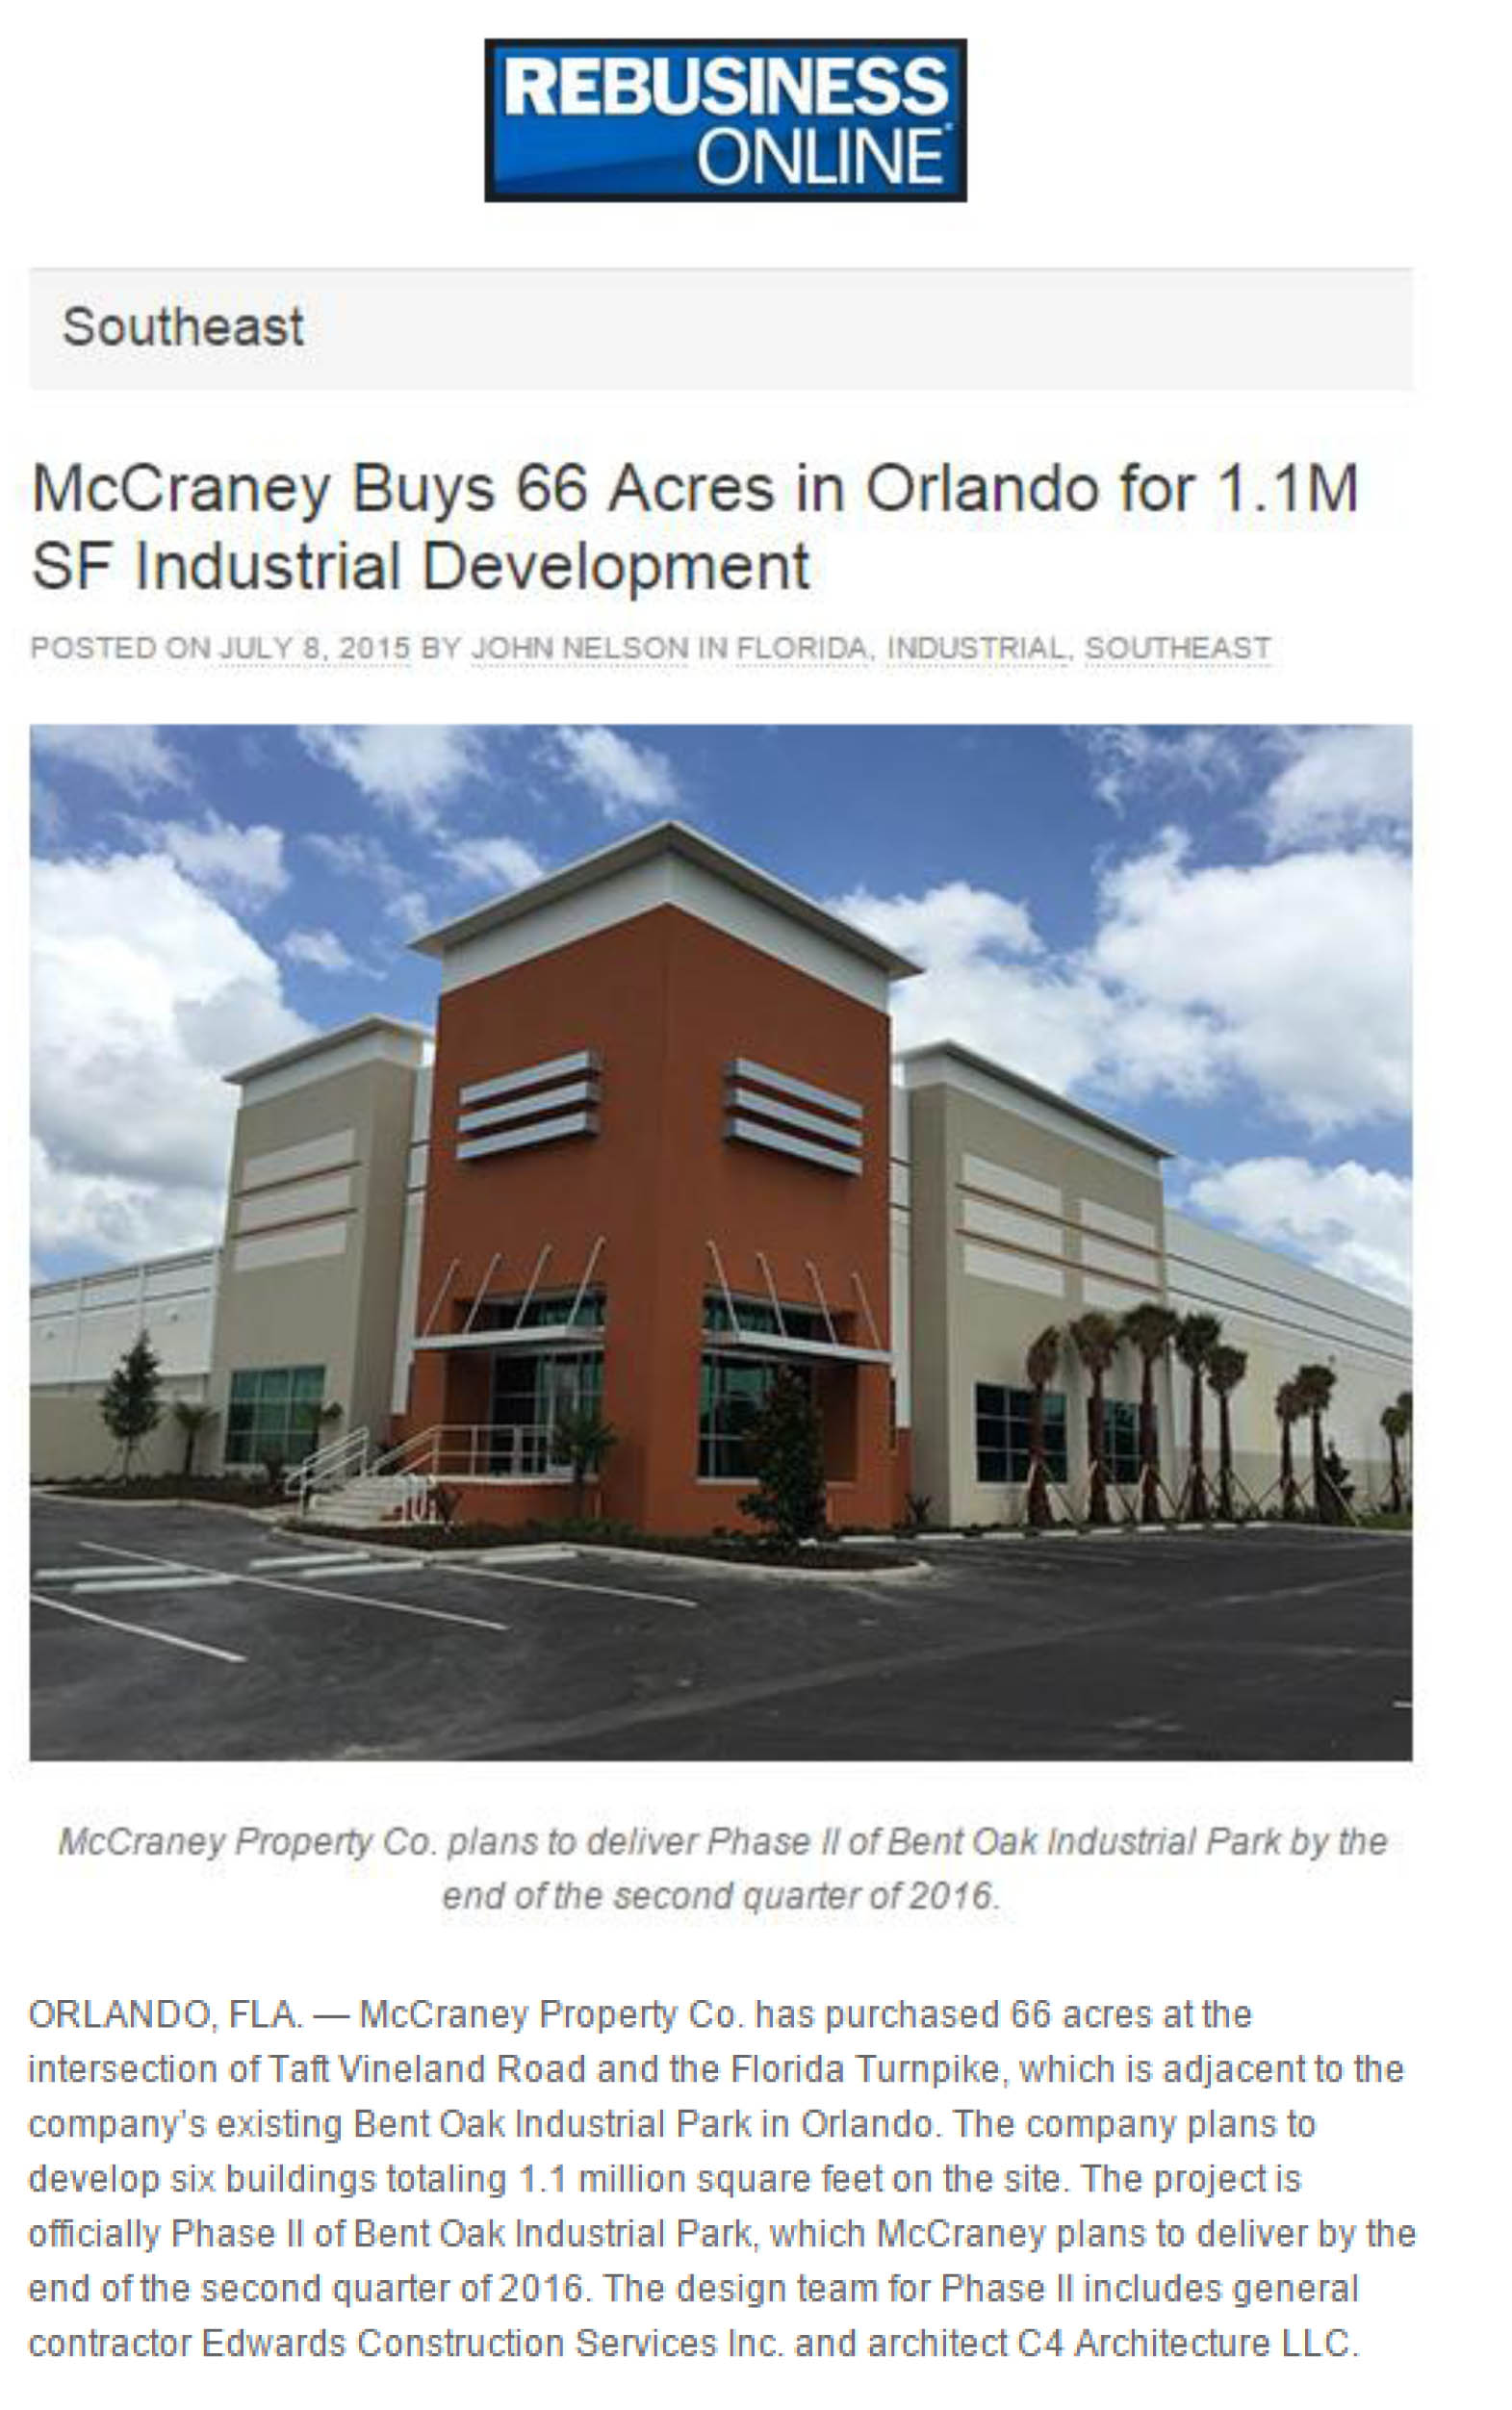 Southeast Real Estate Business - McCraney Buys 66 Acres in Orlando for 1.1M SF Industrial Development - 07.08